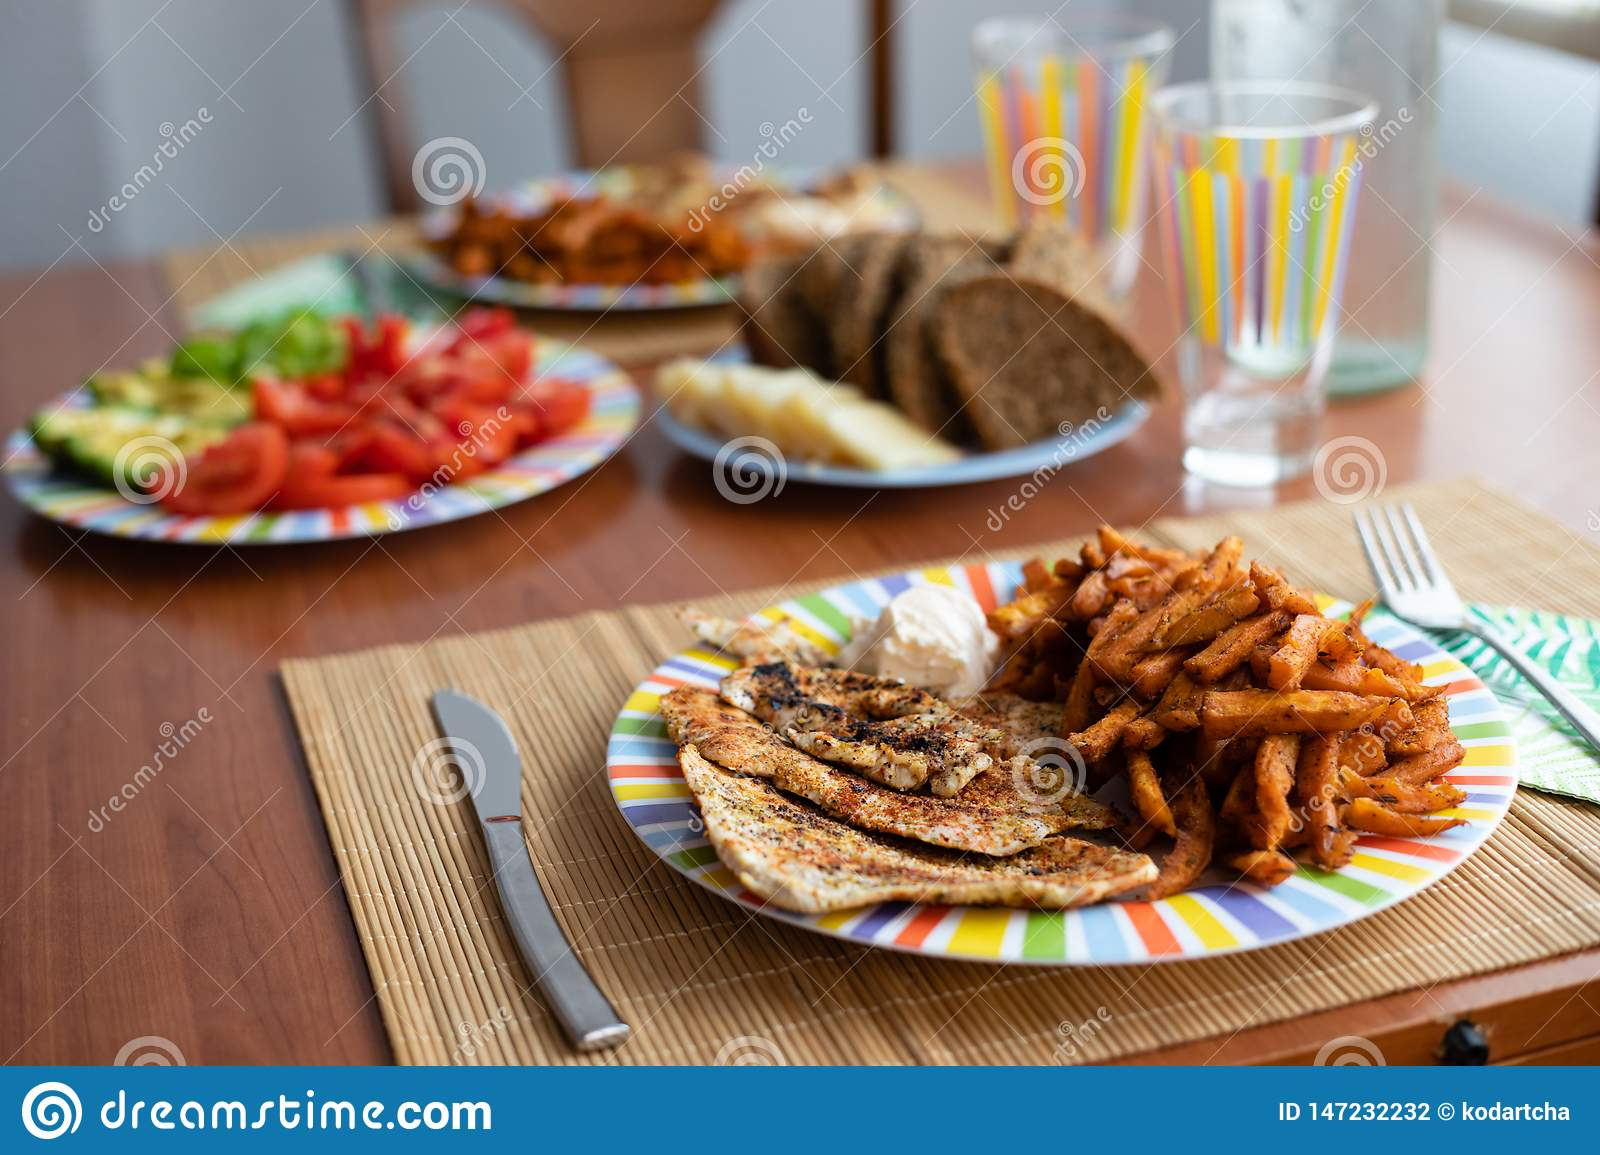 Dinner table with salad dish, chicken, sweet potatoes, bread and colorful water glass